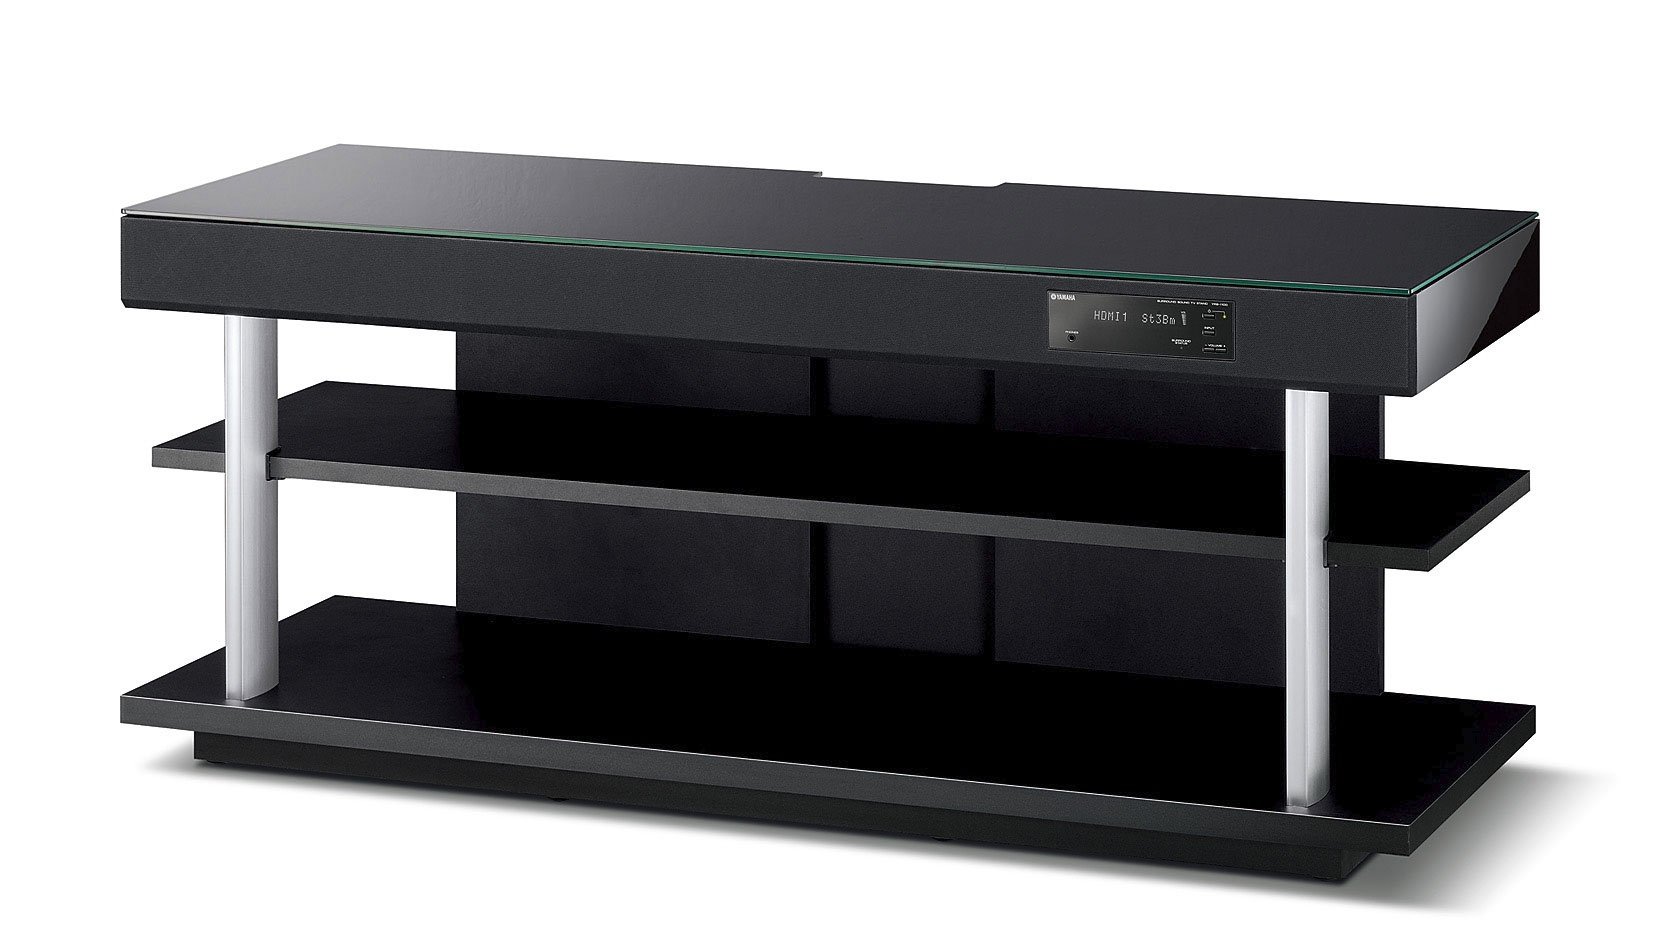 Yamaha yrs 1100 prijzen tweakers - Meuble tv barre de son integree ...